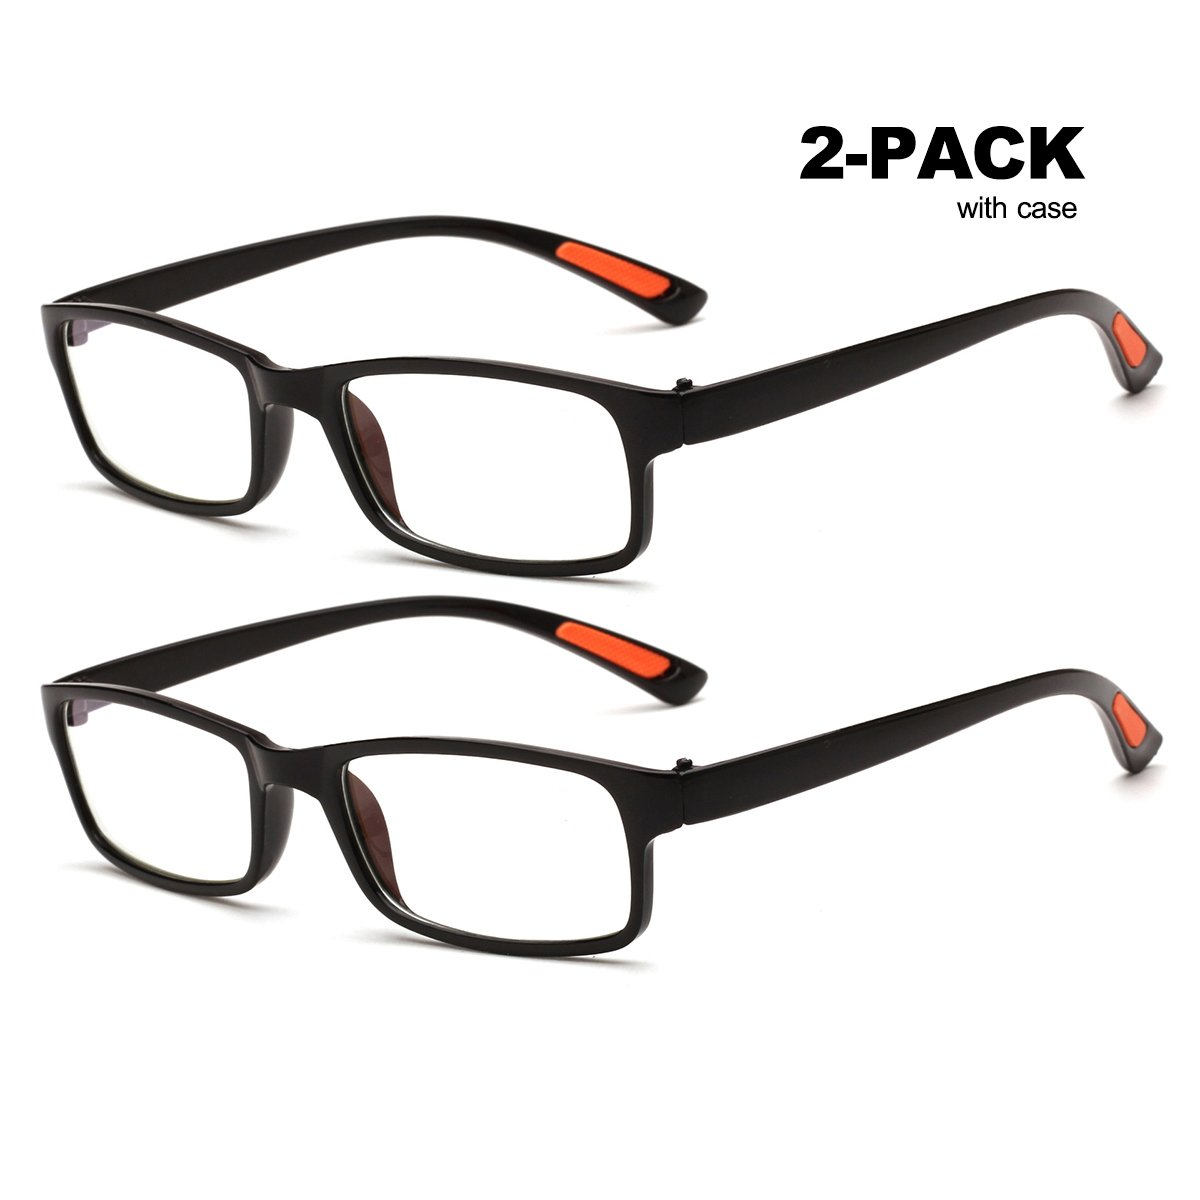 b08400c5bed2 Amazon.com  Reading Glasses for Men and Women 2 Pair Light Plastic with  Case (+4)  Health   Personal Care